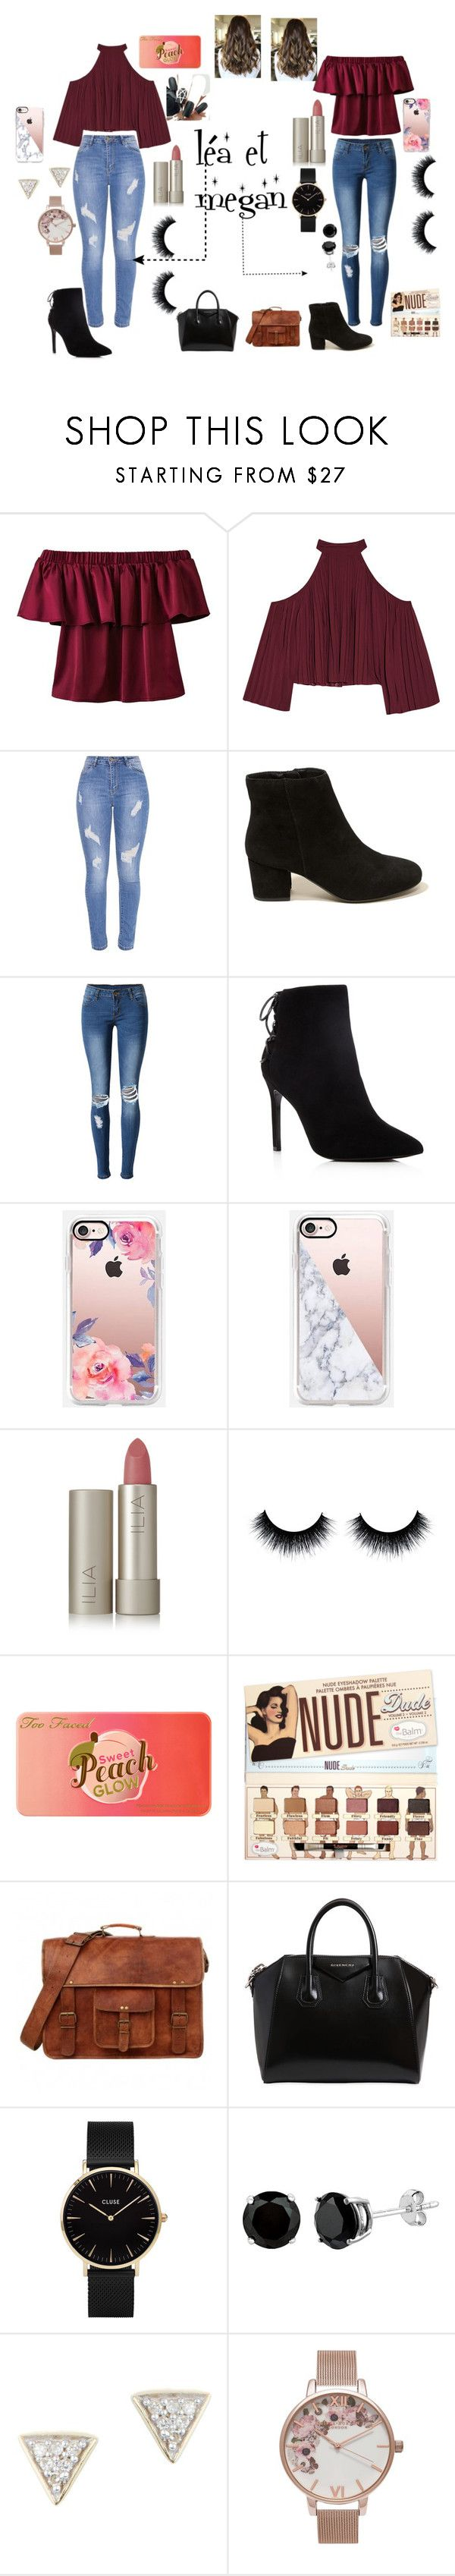 """""""day in the life with léa"""" by megan-simard on Polyvore featuring mode, W118 by Walter Baker, Hollister Co., WithChic, Charles David, Casetify, Ilia, Too Faced Cosmetics, Givenchy et CLUSE"""